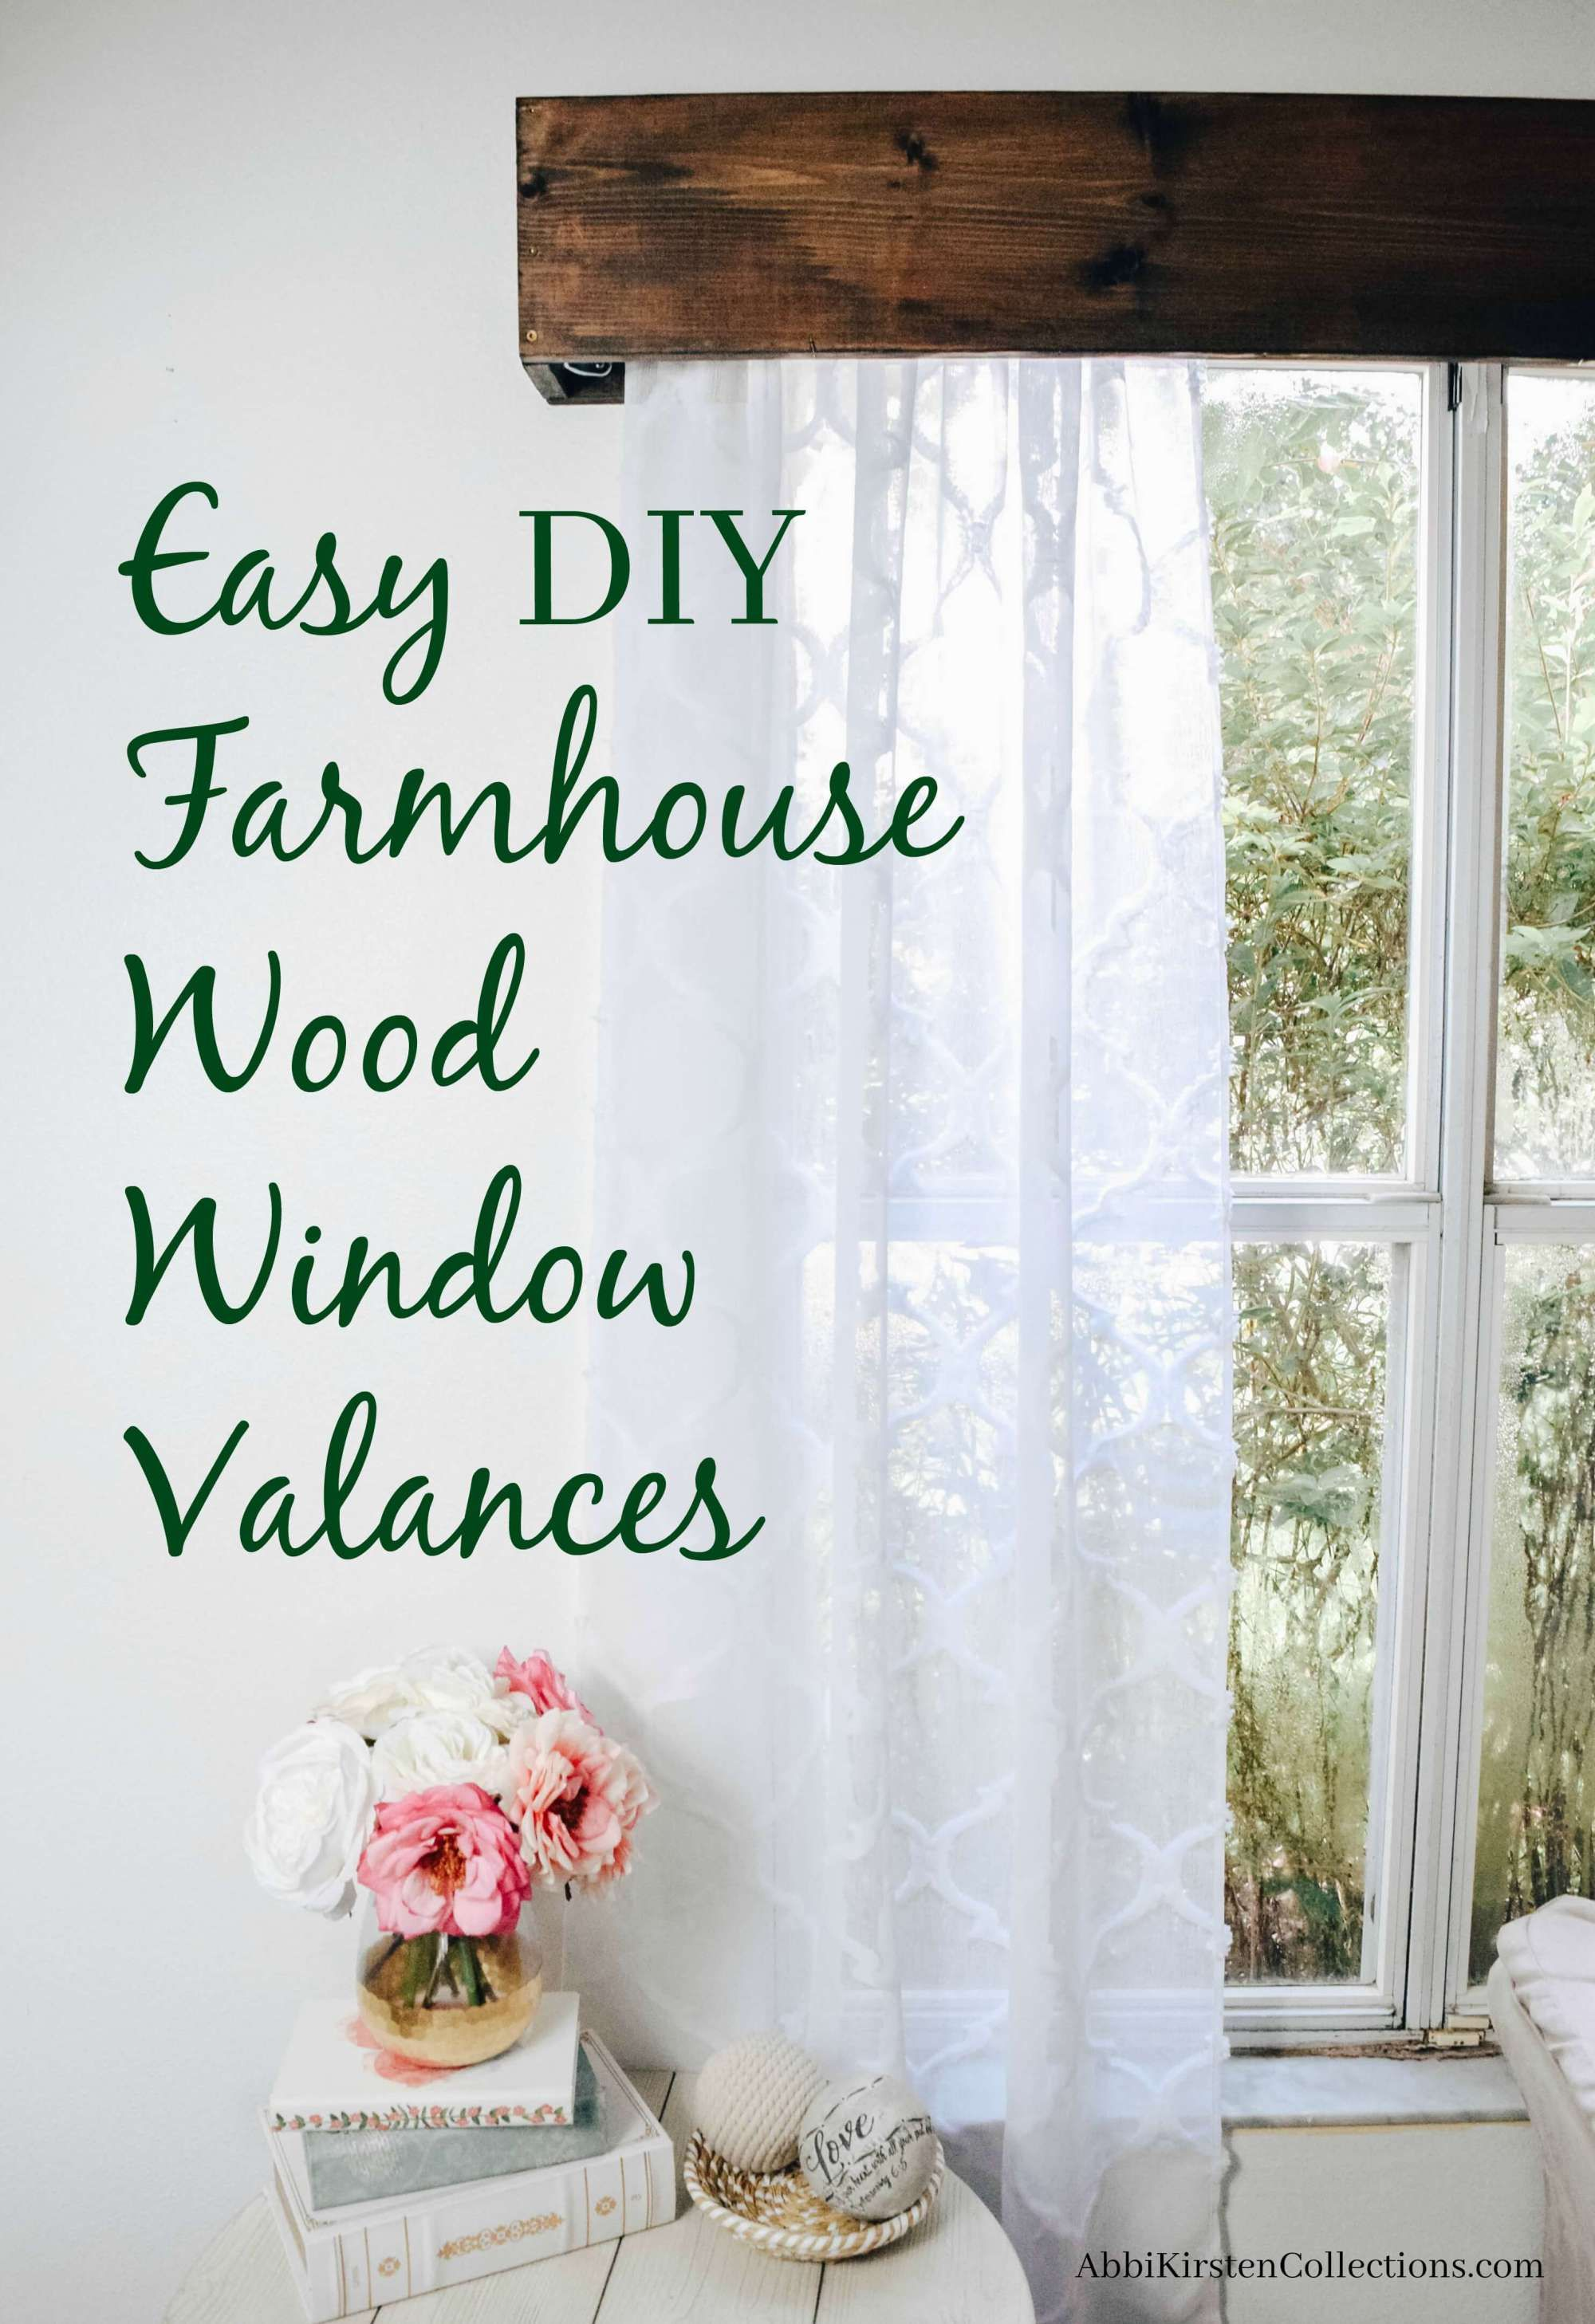 How To Make Your Own Wood Window Valence With Curtains Wood Valance Kitchen Window Valances Living Room Decor Curtains